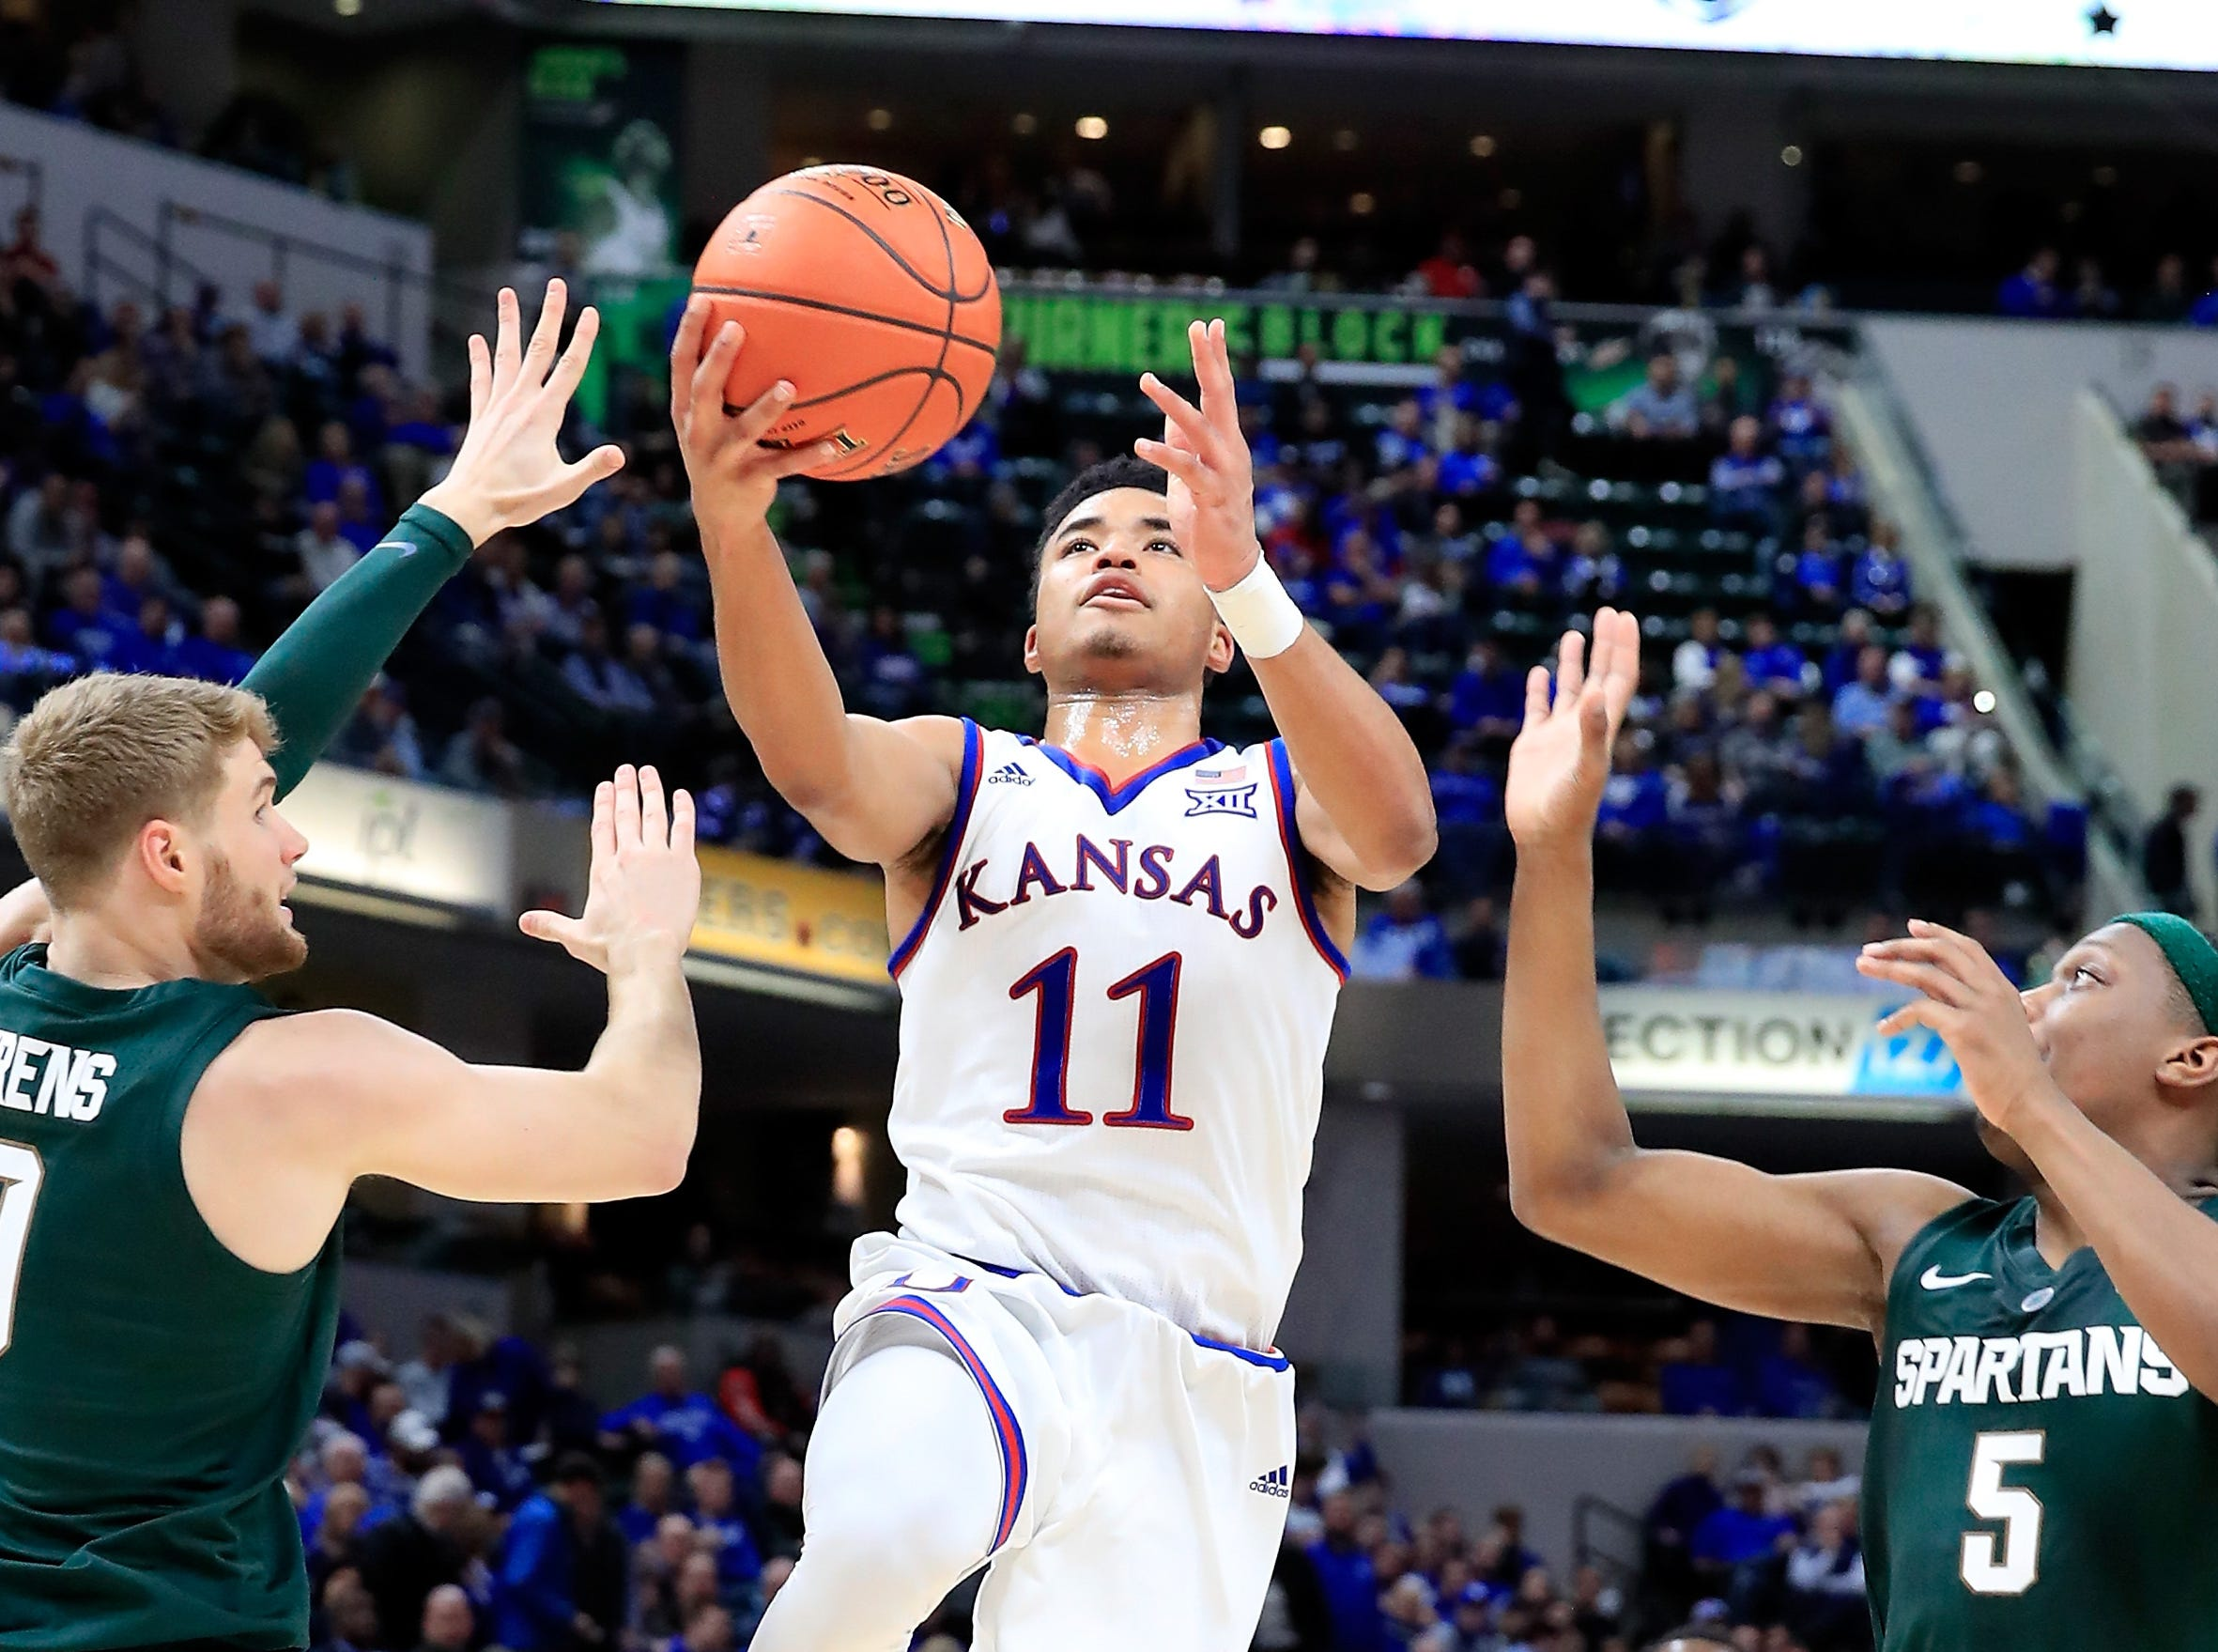 Devon Dotson (11) of the Kansas Jayhawks shoots the ball against the Michigan State Spartans during the State Farm Champions Classic at Bankers Life Fieldhouse.